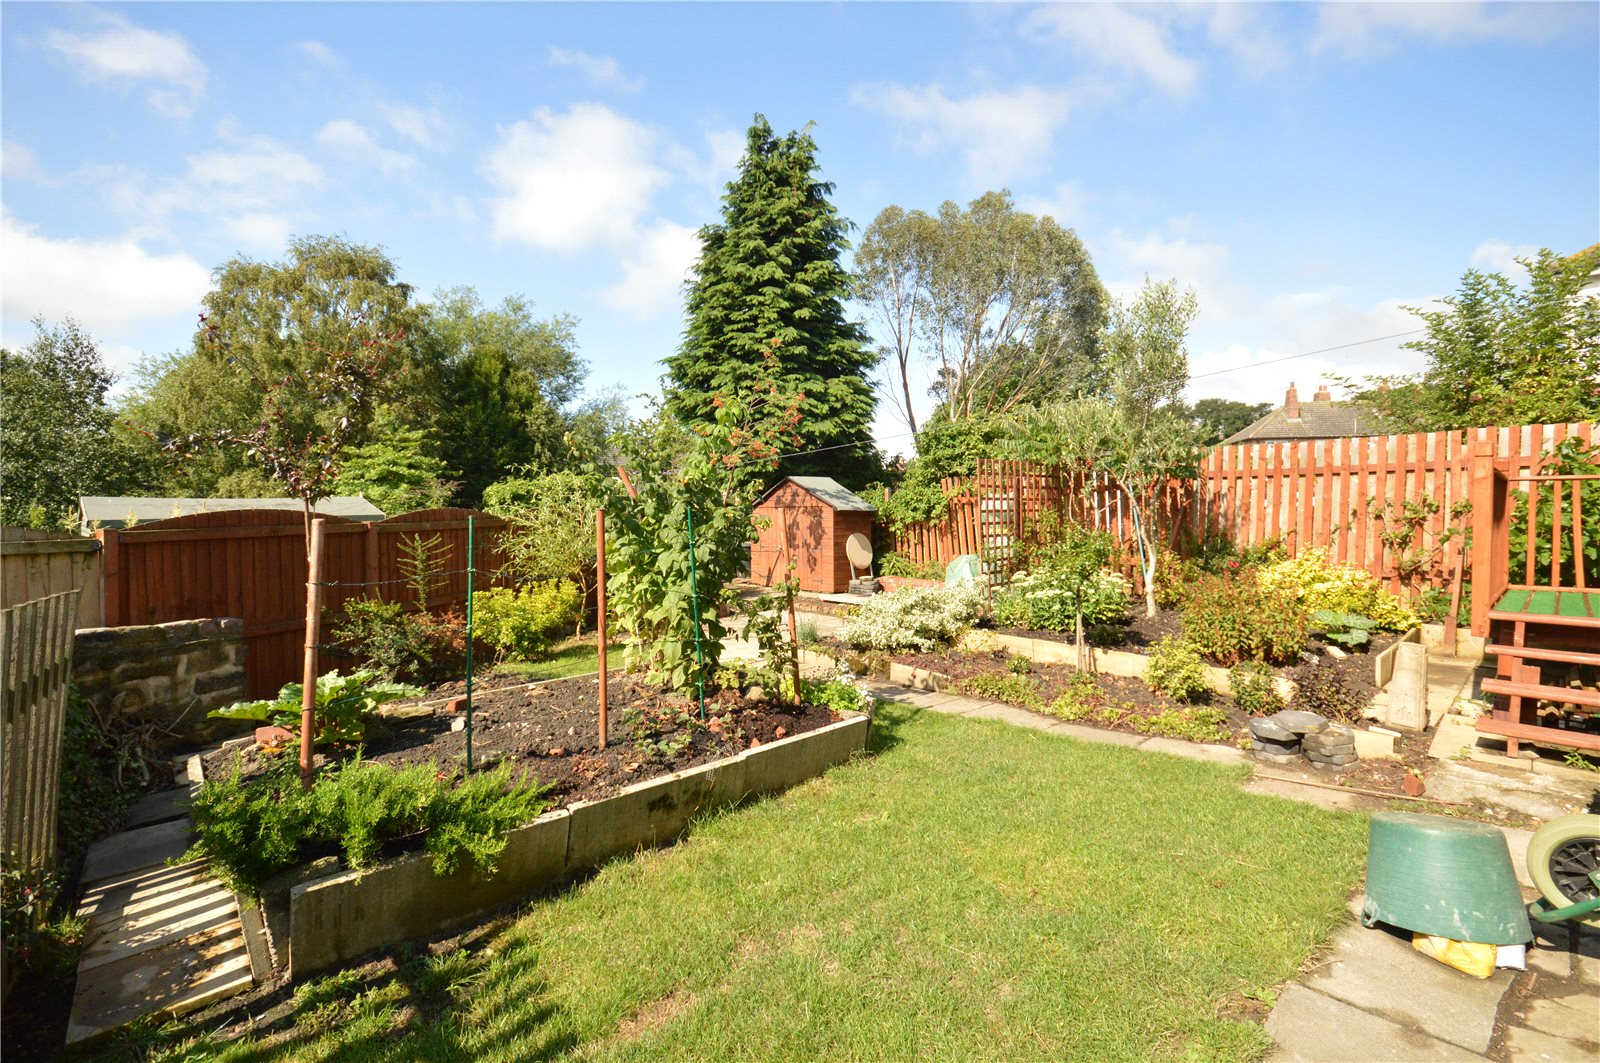 property for sale in Horsforth, rear of home, garden, spacious and well kept